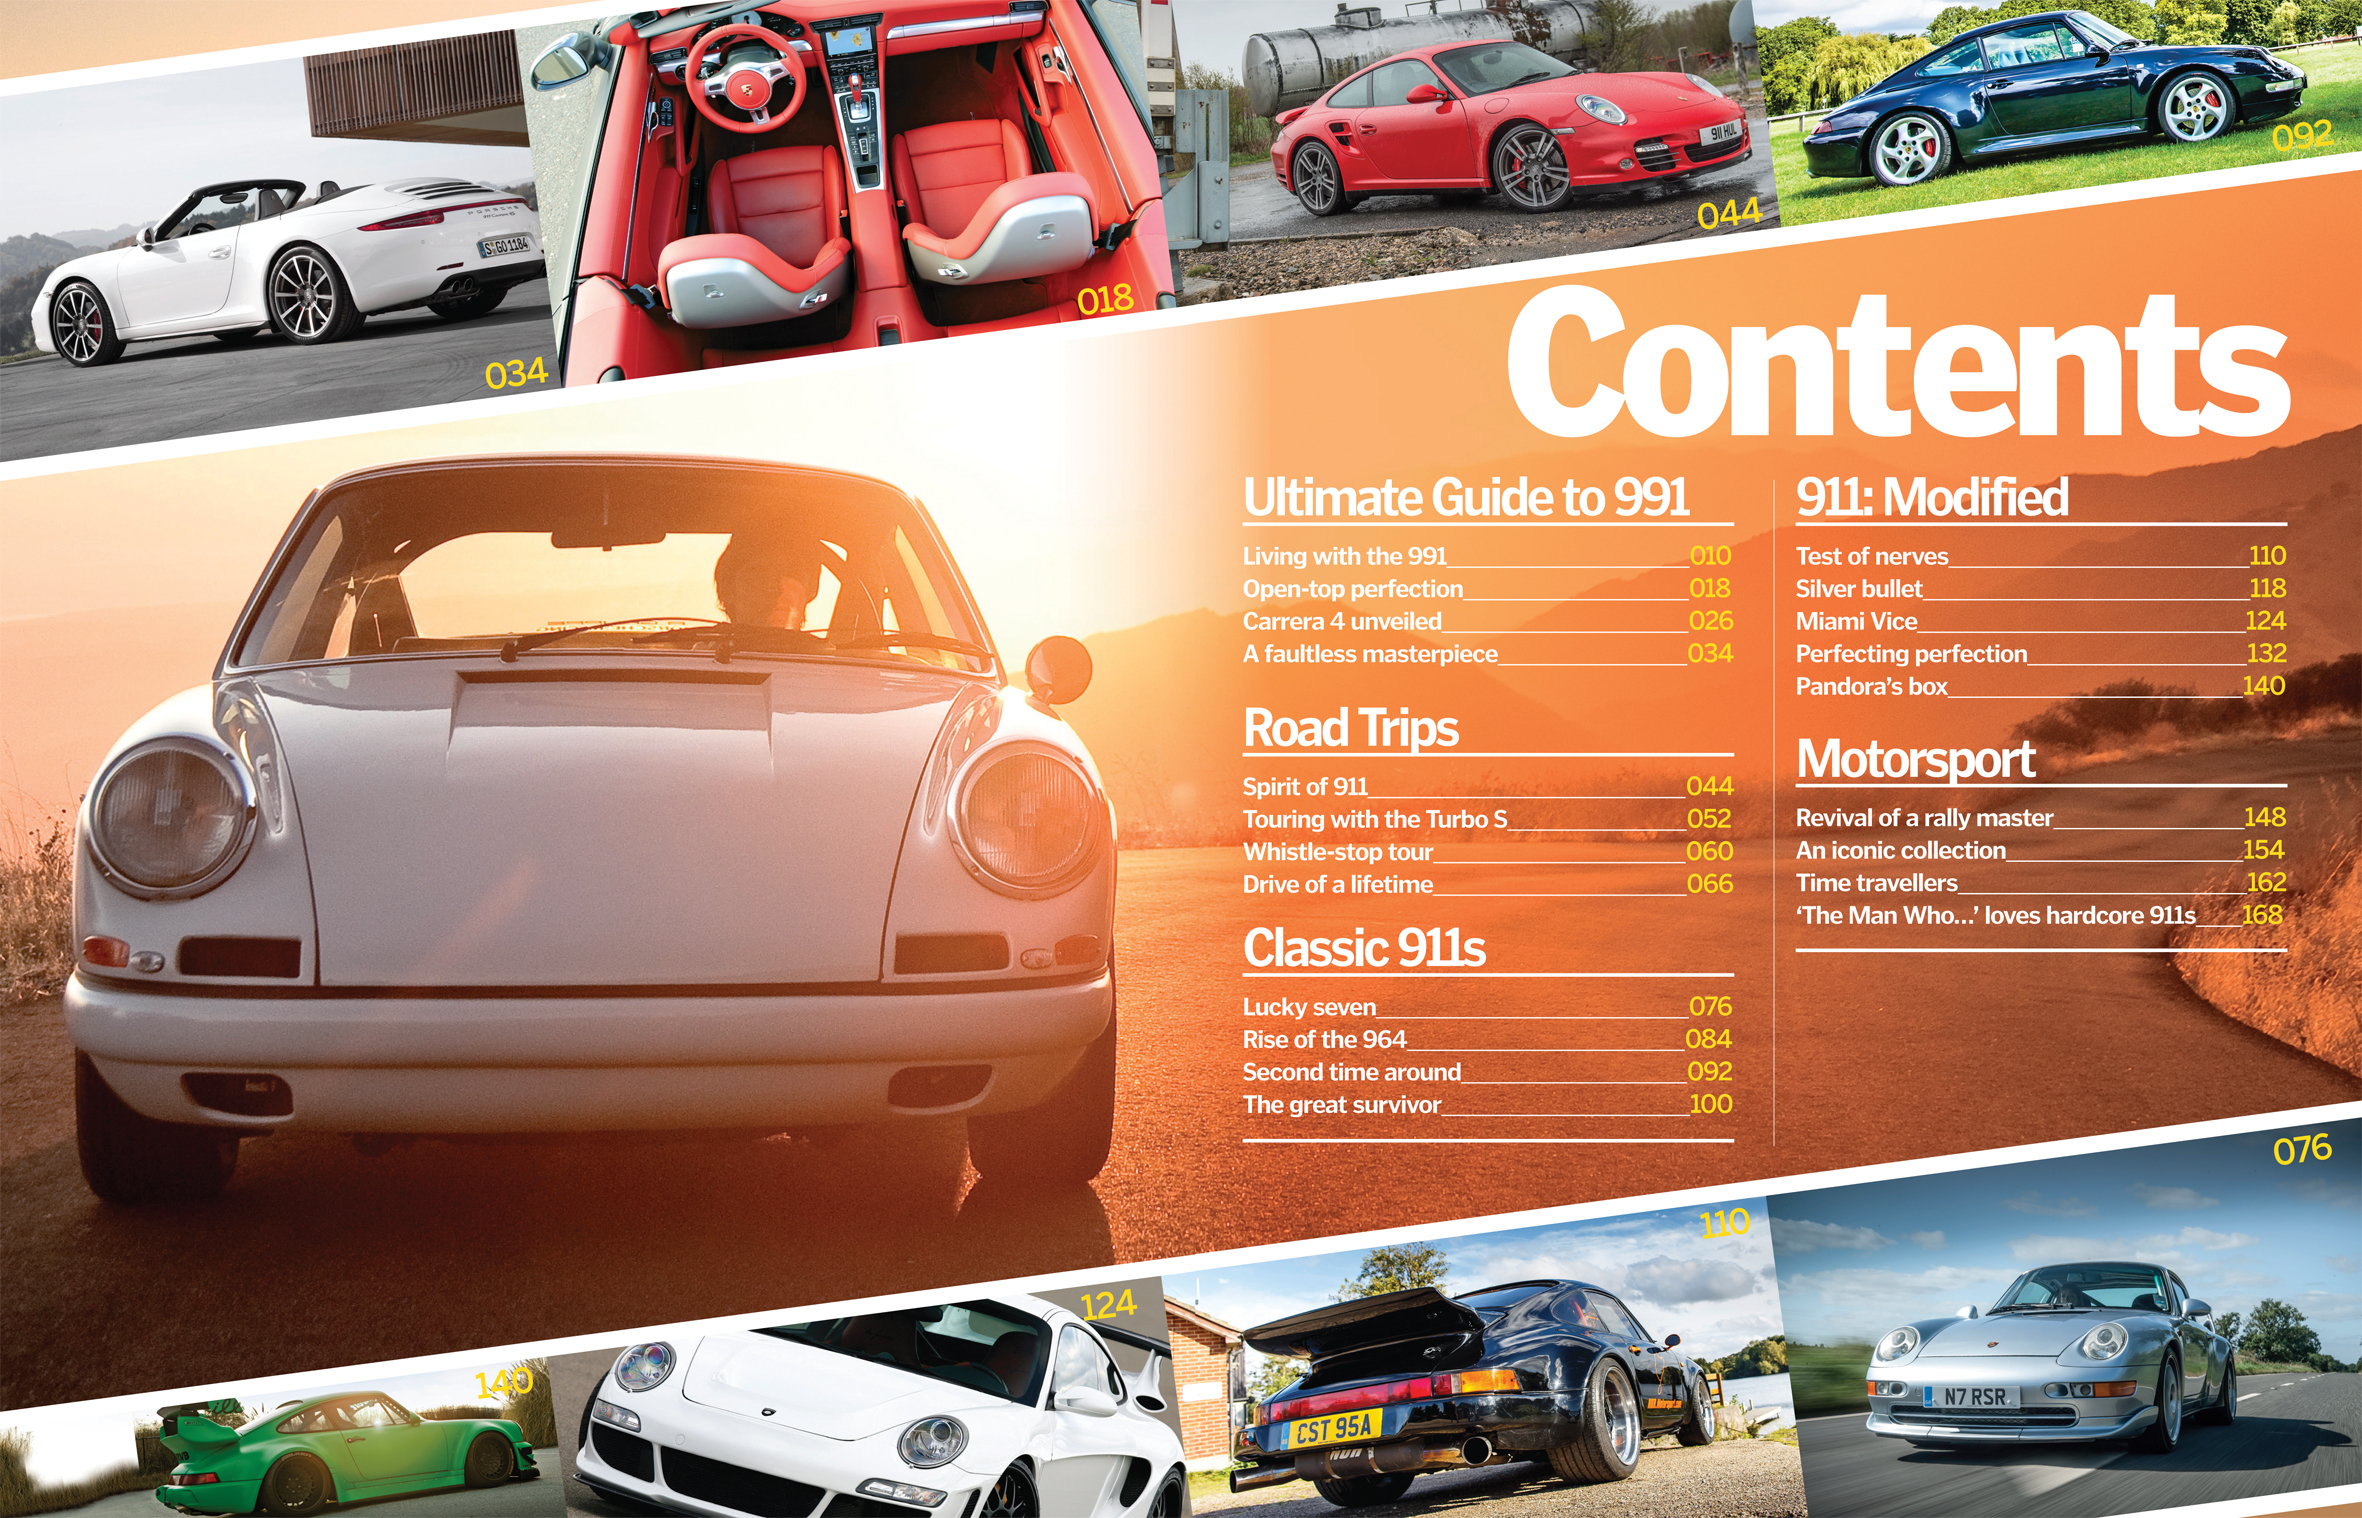 Porche 911 content spread developmen